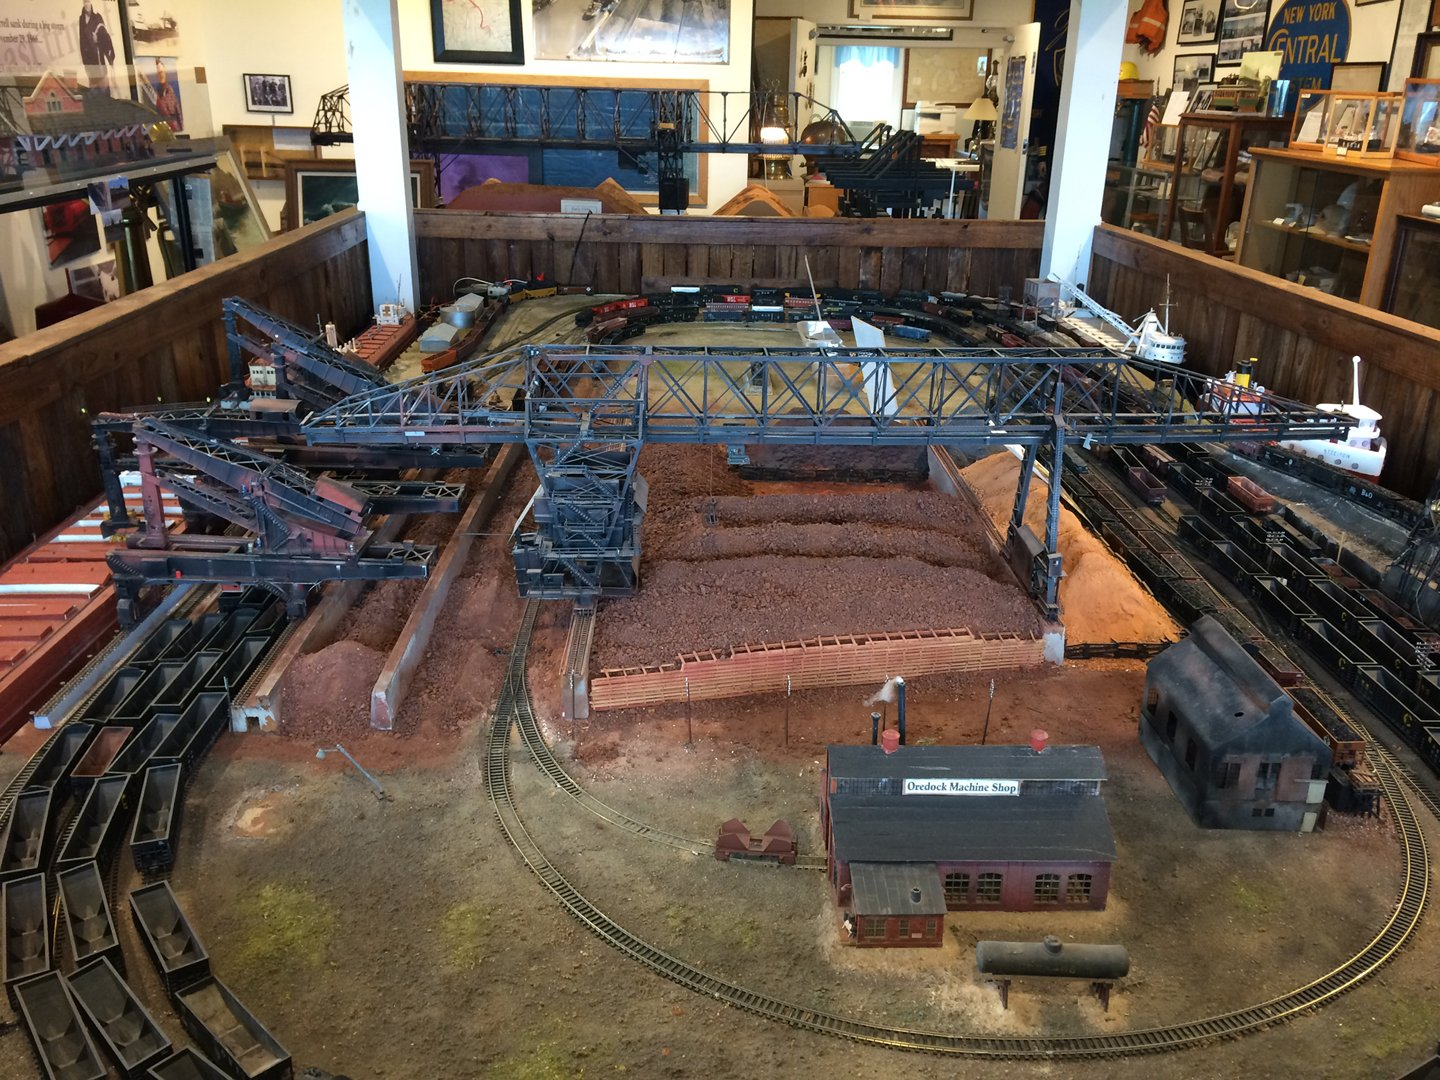 One of the museum's rooms featuring Lawson Stevenson's model of the Ashtabula Harbor in the foreground (Photo: Brianna Treleven)